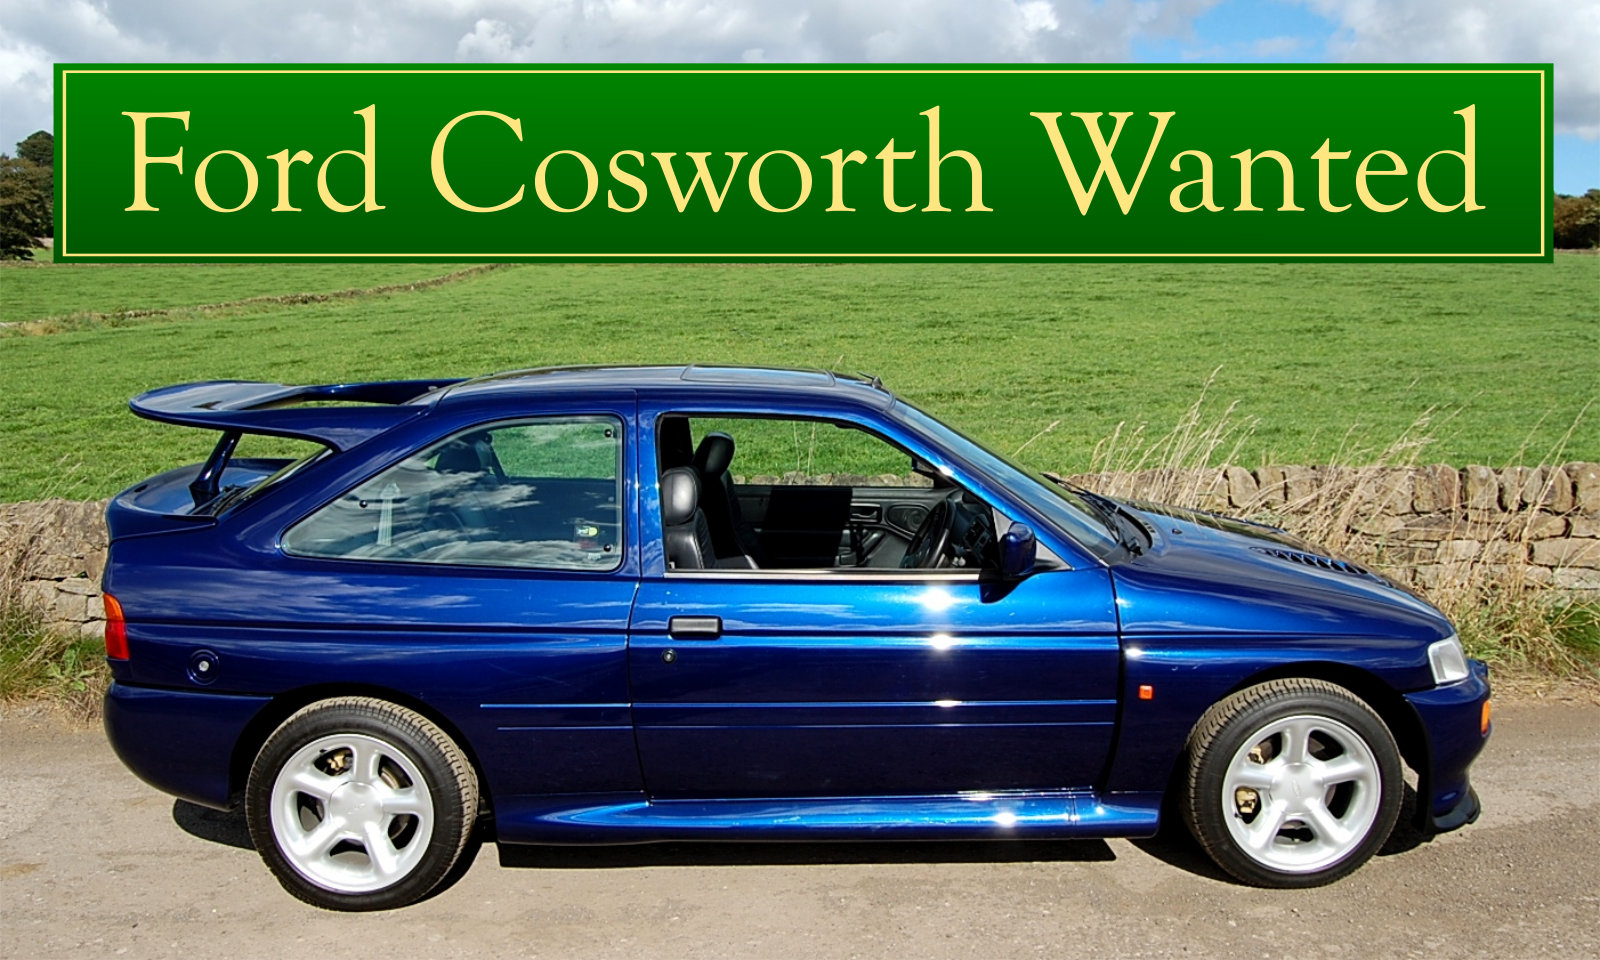 FORD COSWORTH WANTED, CLASSIC CARS WANTED, IMMEDIATE PAYMENT Wanted (picture 1 of 6)